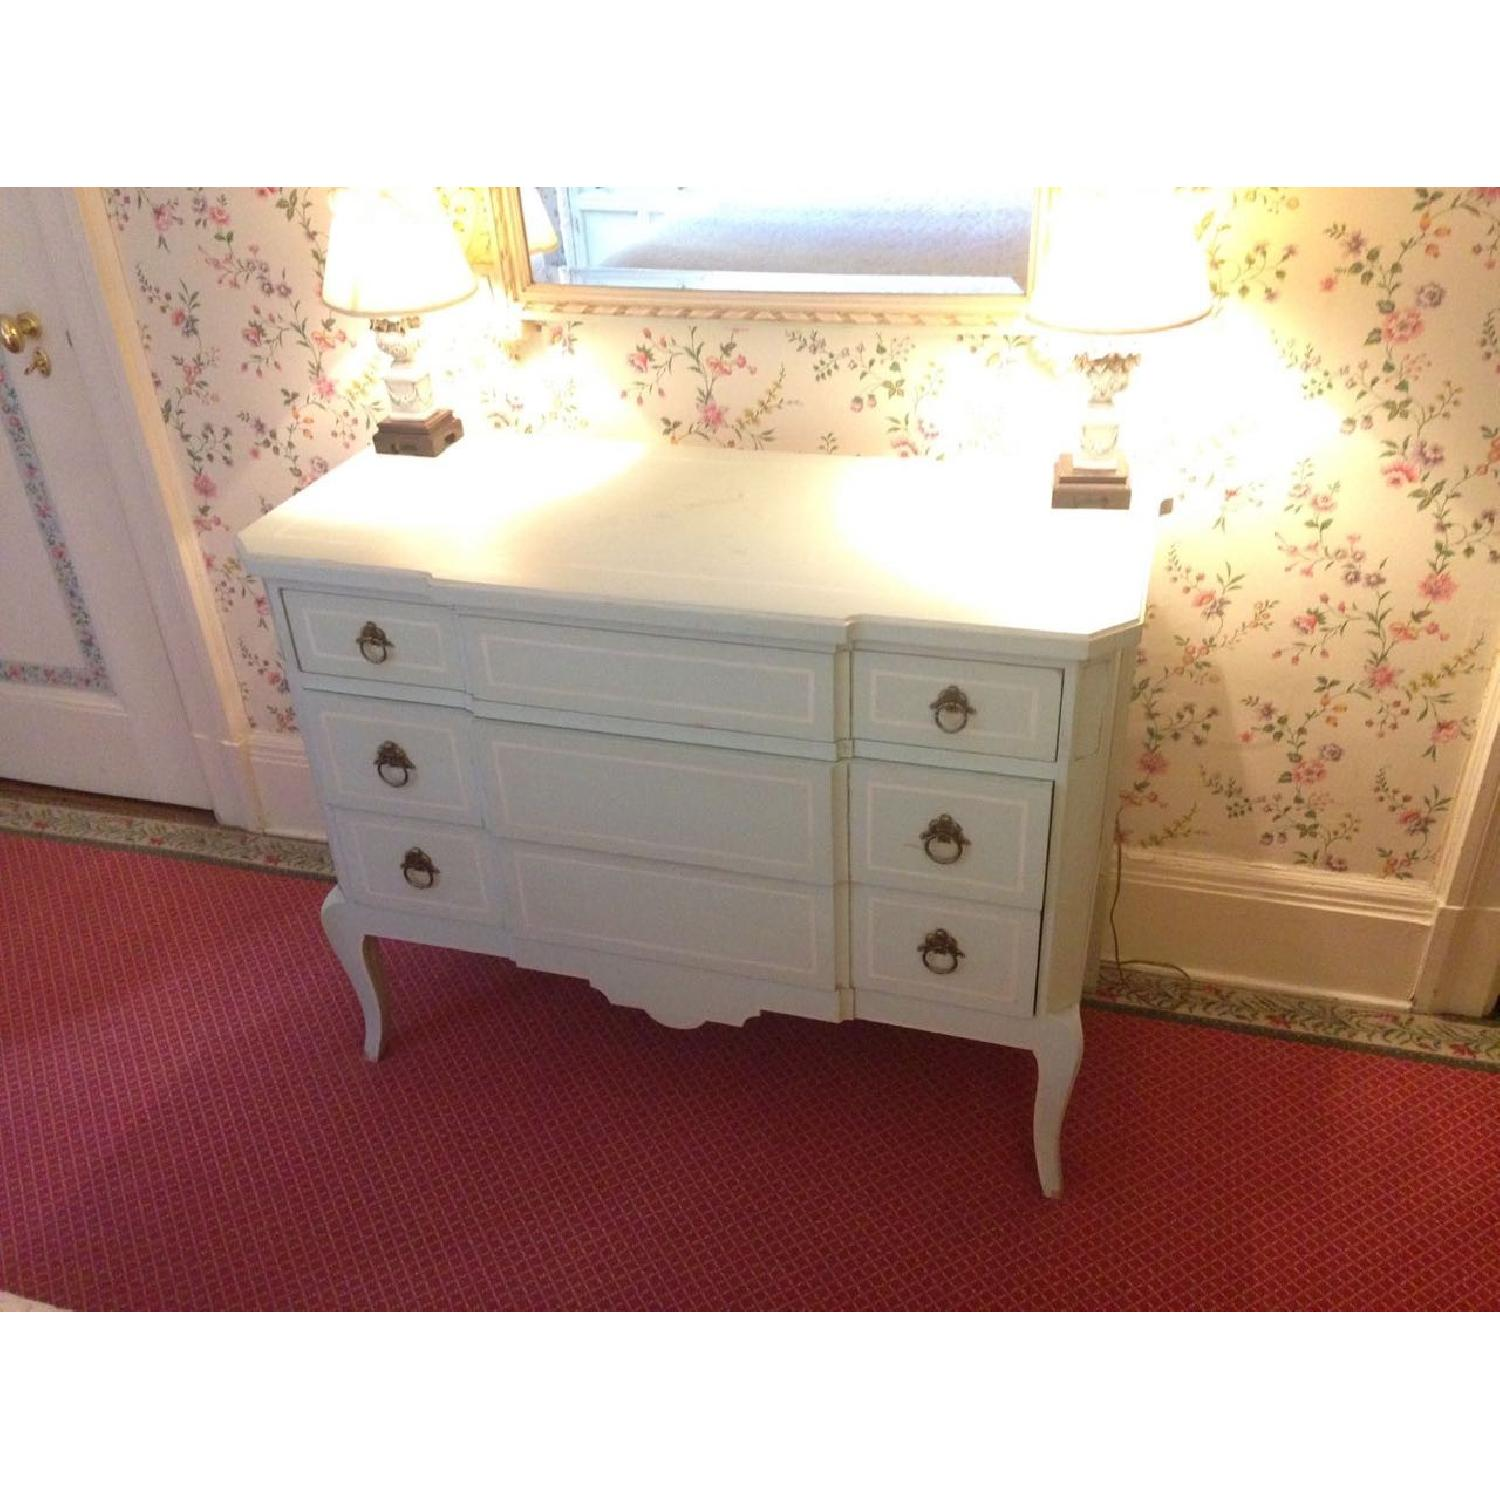 Julia Gray French Dresser w/ Blue Accents - image-18